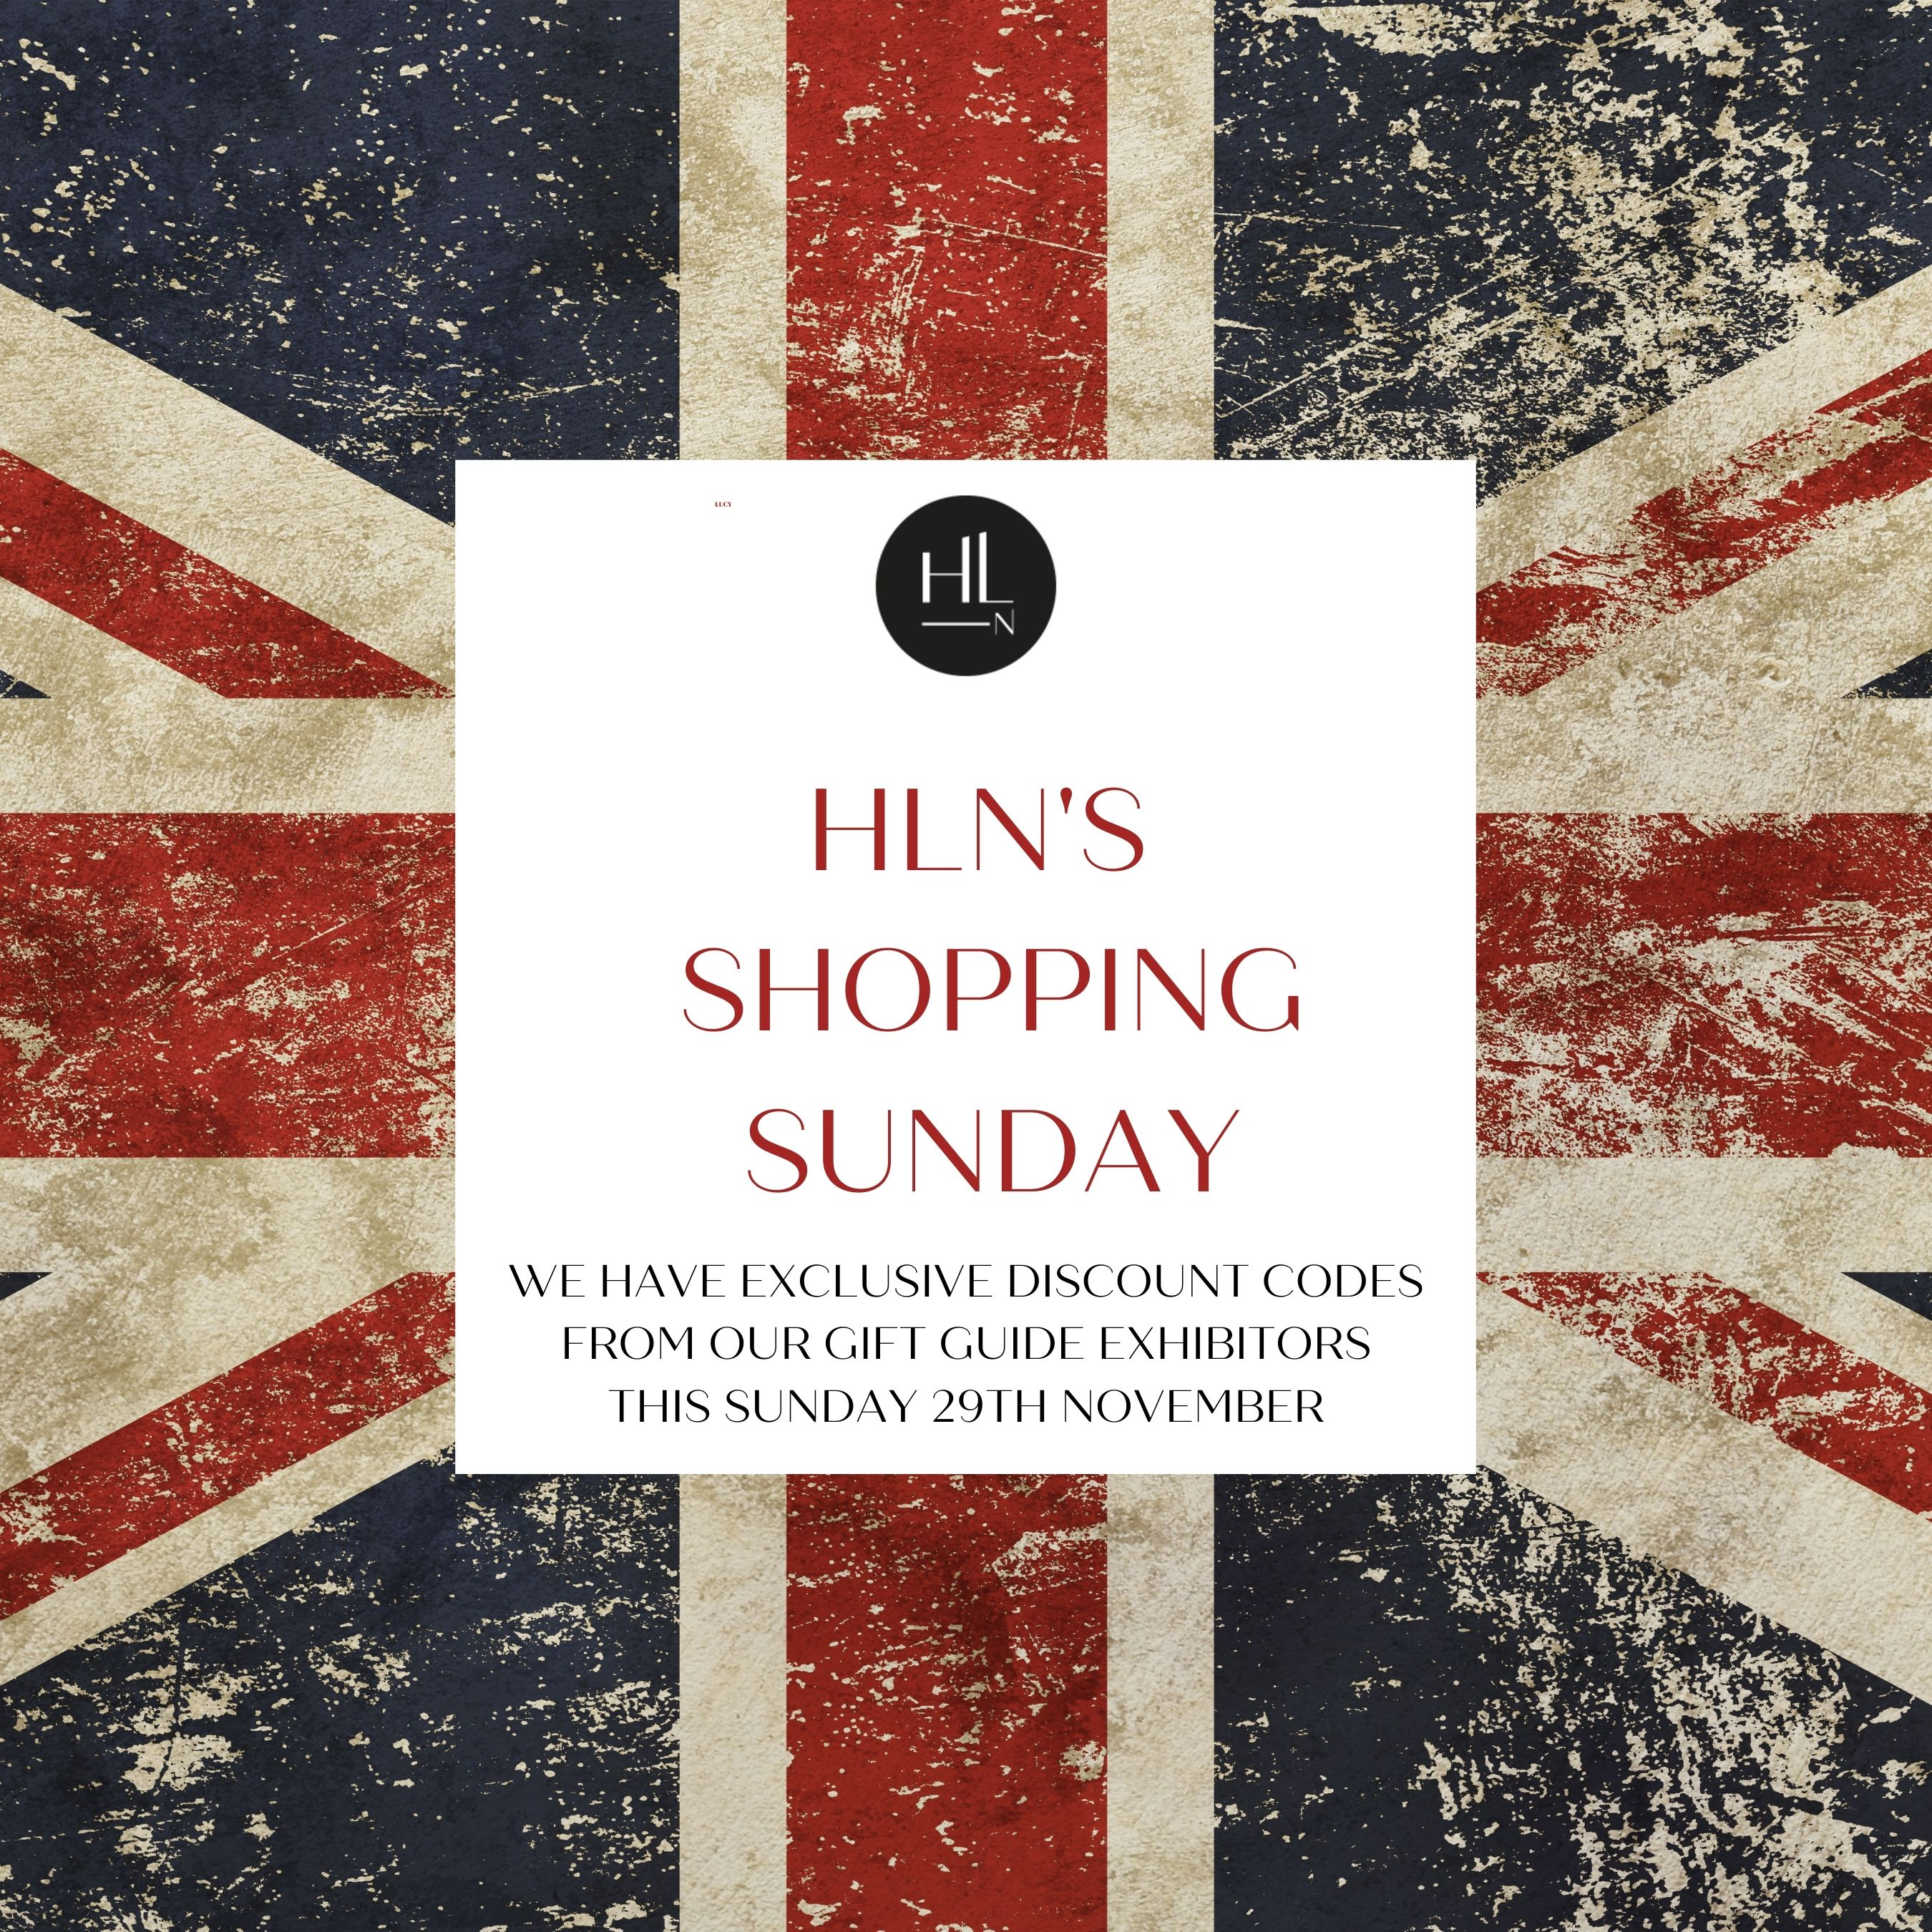 HLN's Shopping Sunday is here – get the codes